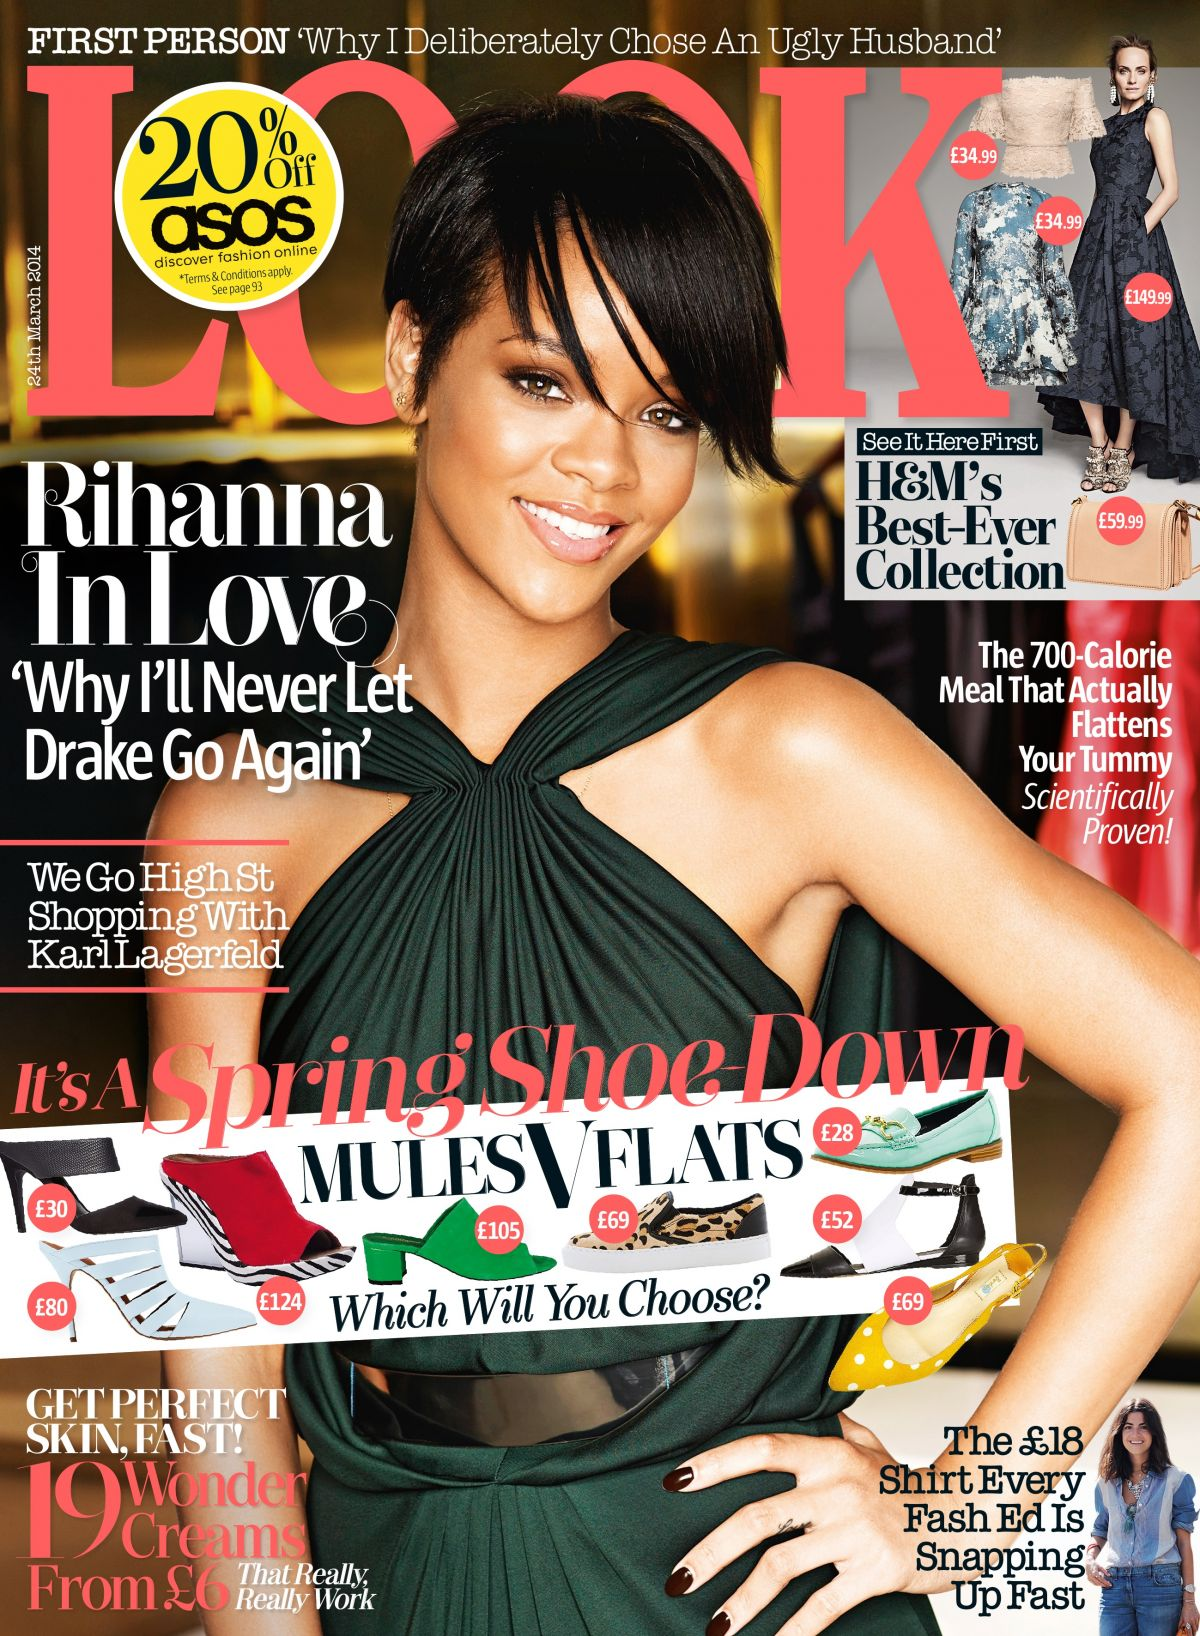 RIHANNA in Look Magazine, March 2014 Issue